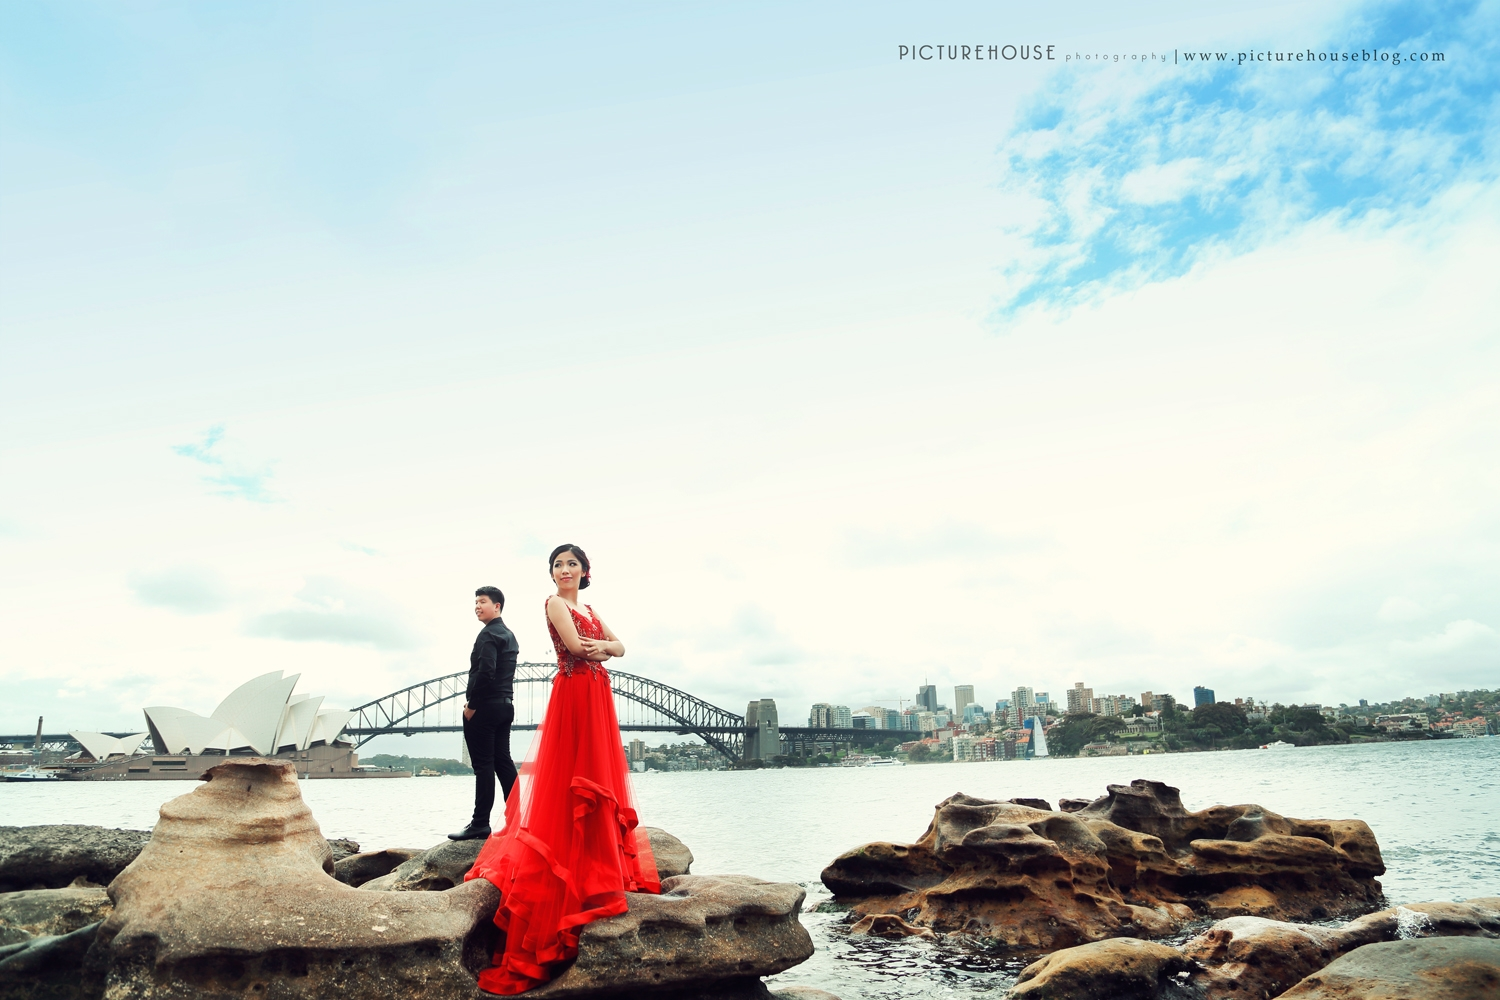 Picture House Photography